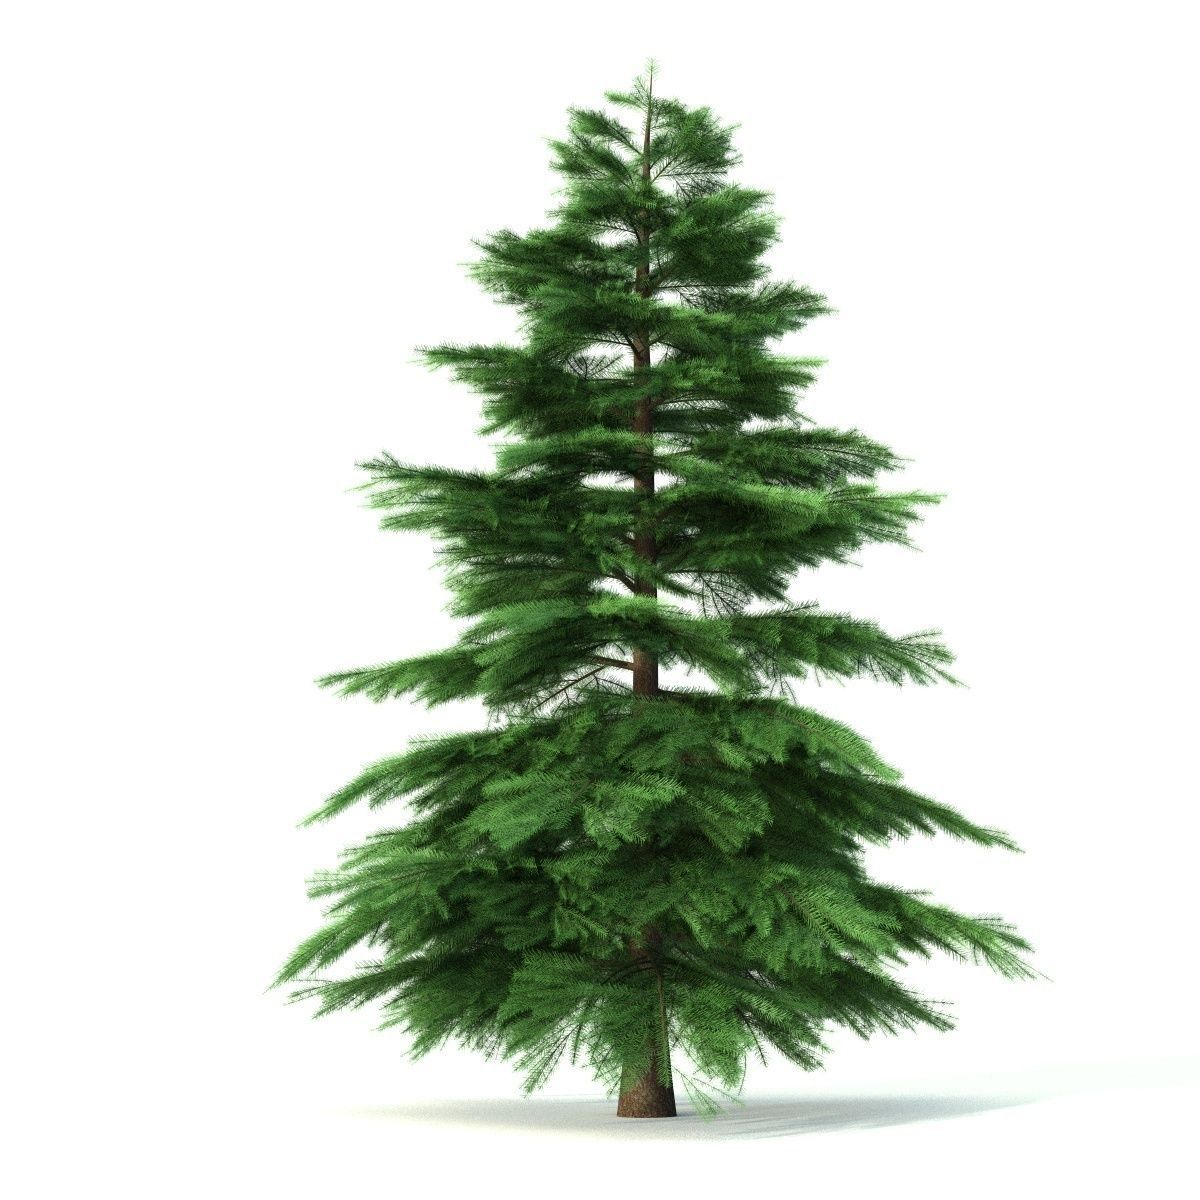 Fir tree - animation of growth 3D model animated for Pine Tree Animated  300lyp